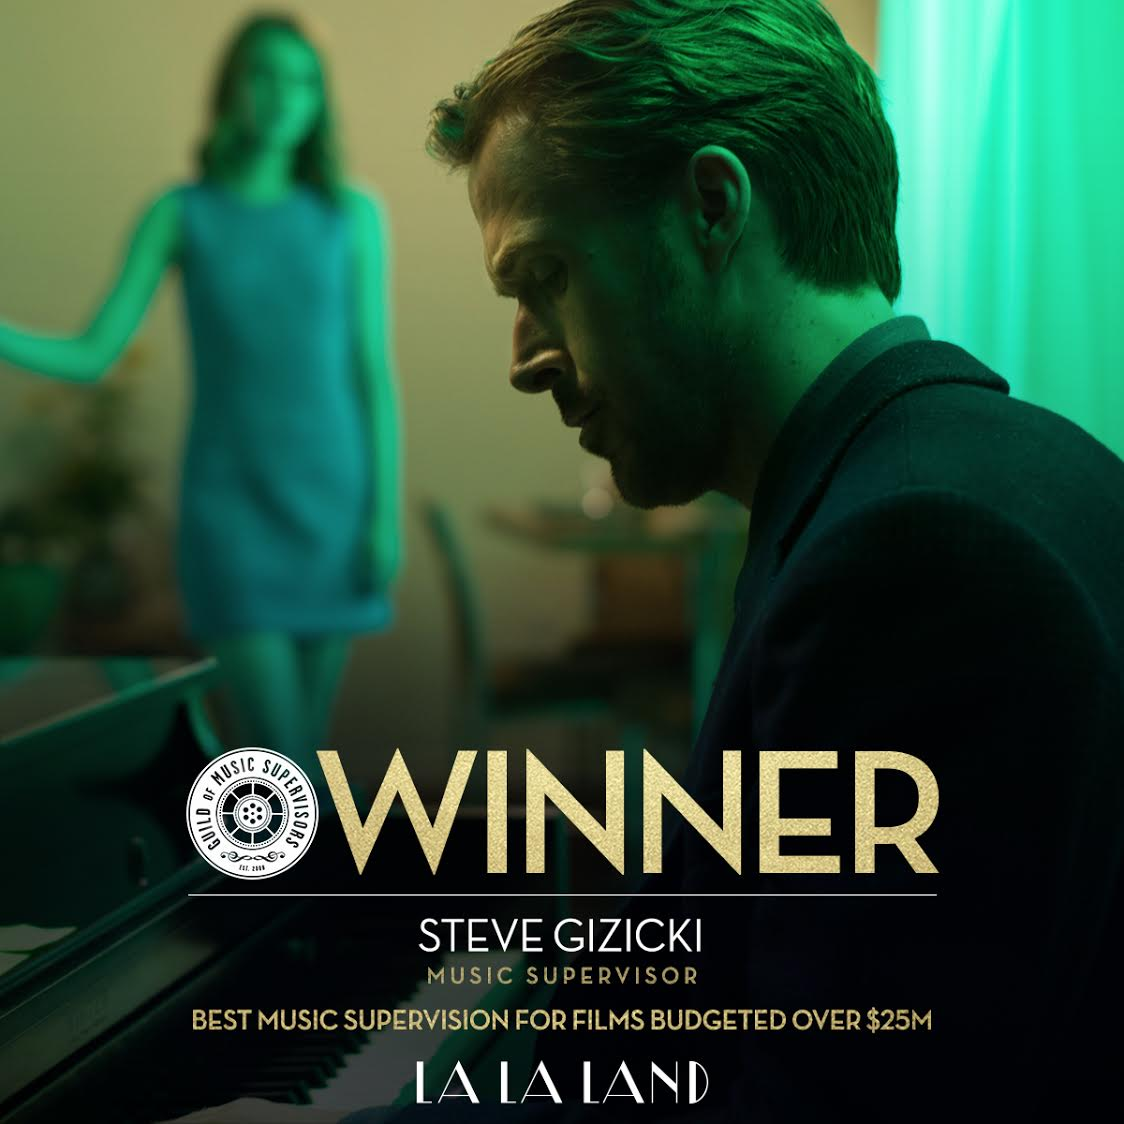 🎶 Congratulations to #LALALAND's Steve Gizicki for his Guild of Music...